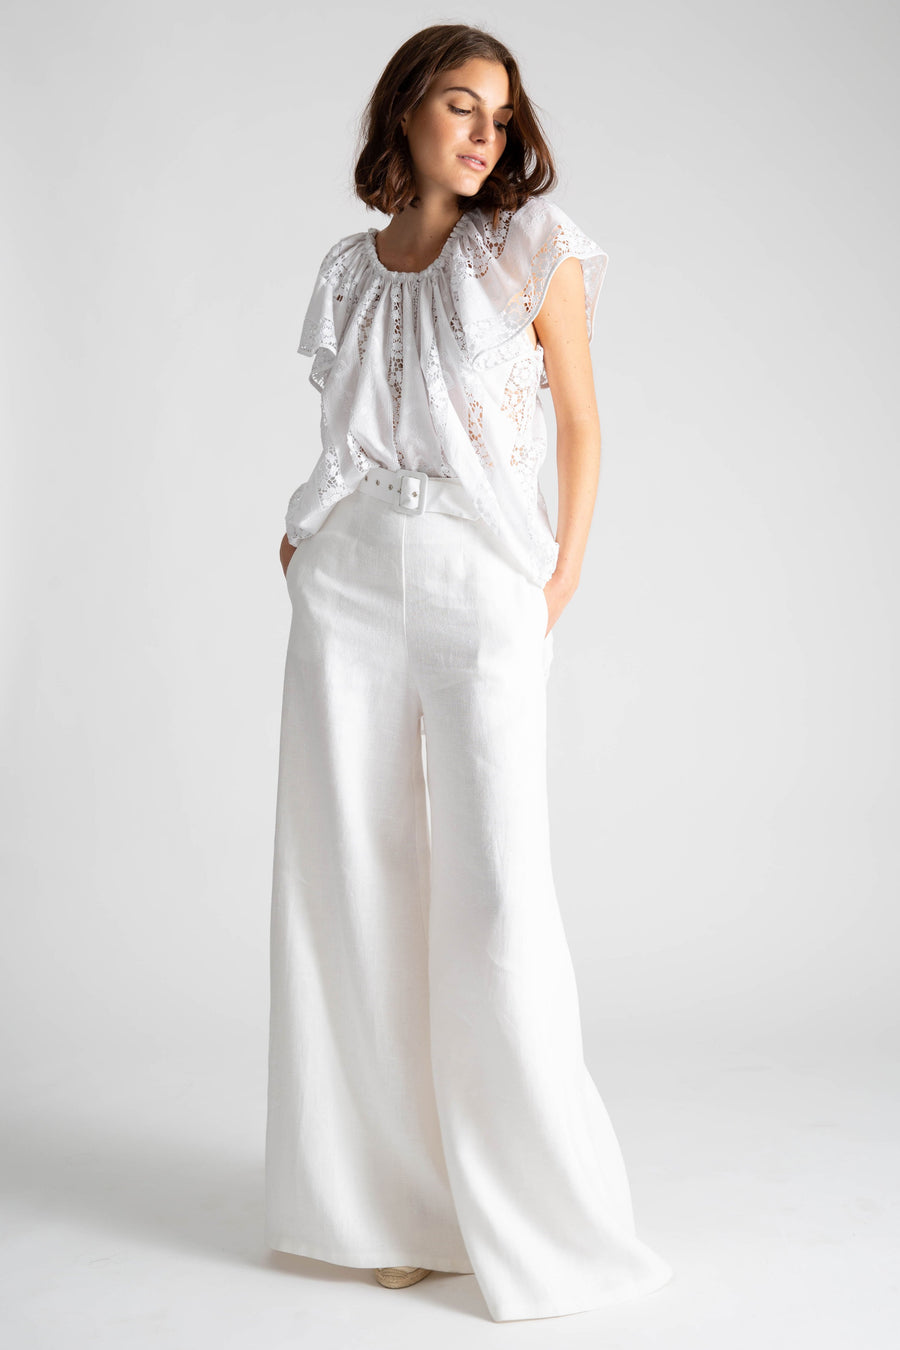 This is a photo of a woman wearing an all white outfit with linen white high waisted flare pants and belt. On top, she wears a high-low top with flowy show sleeves in a cotton lace embroidery.